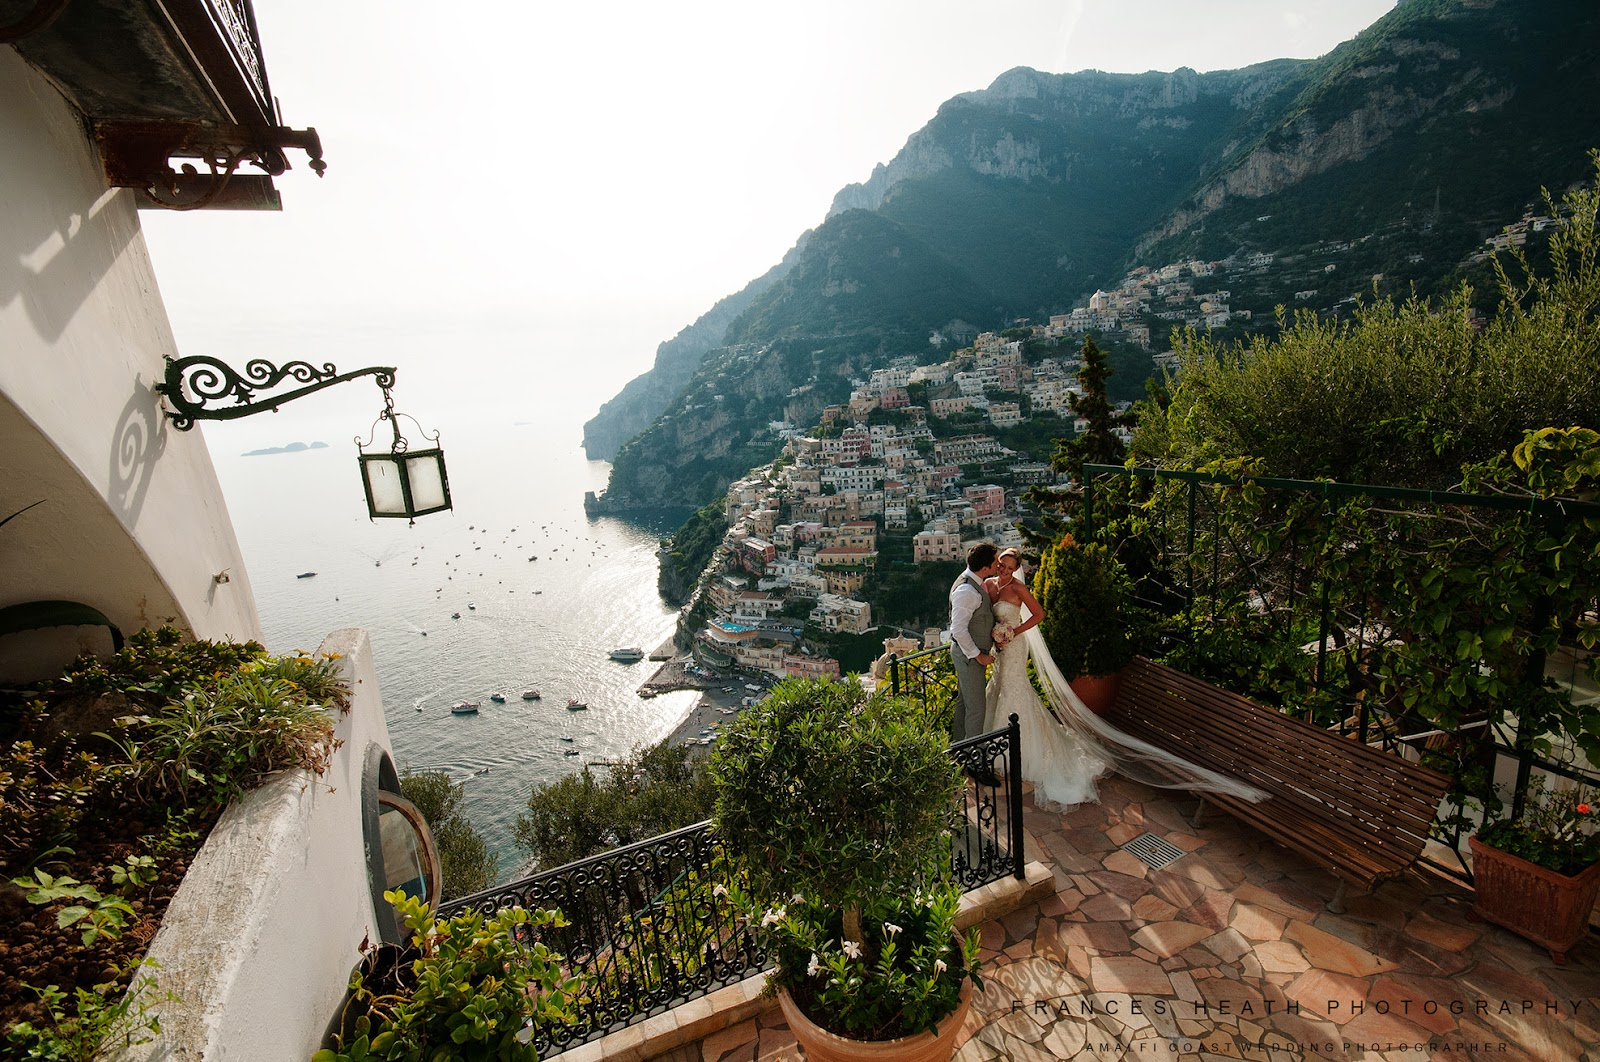 Wedding portraits taken in Positano Italy